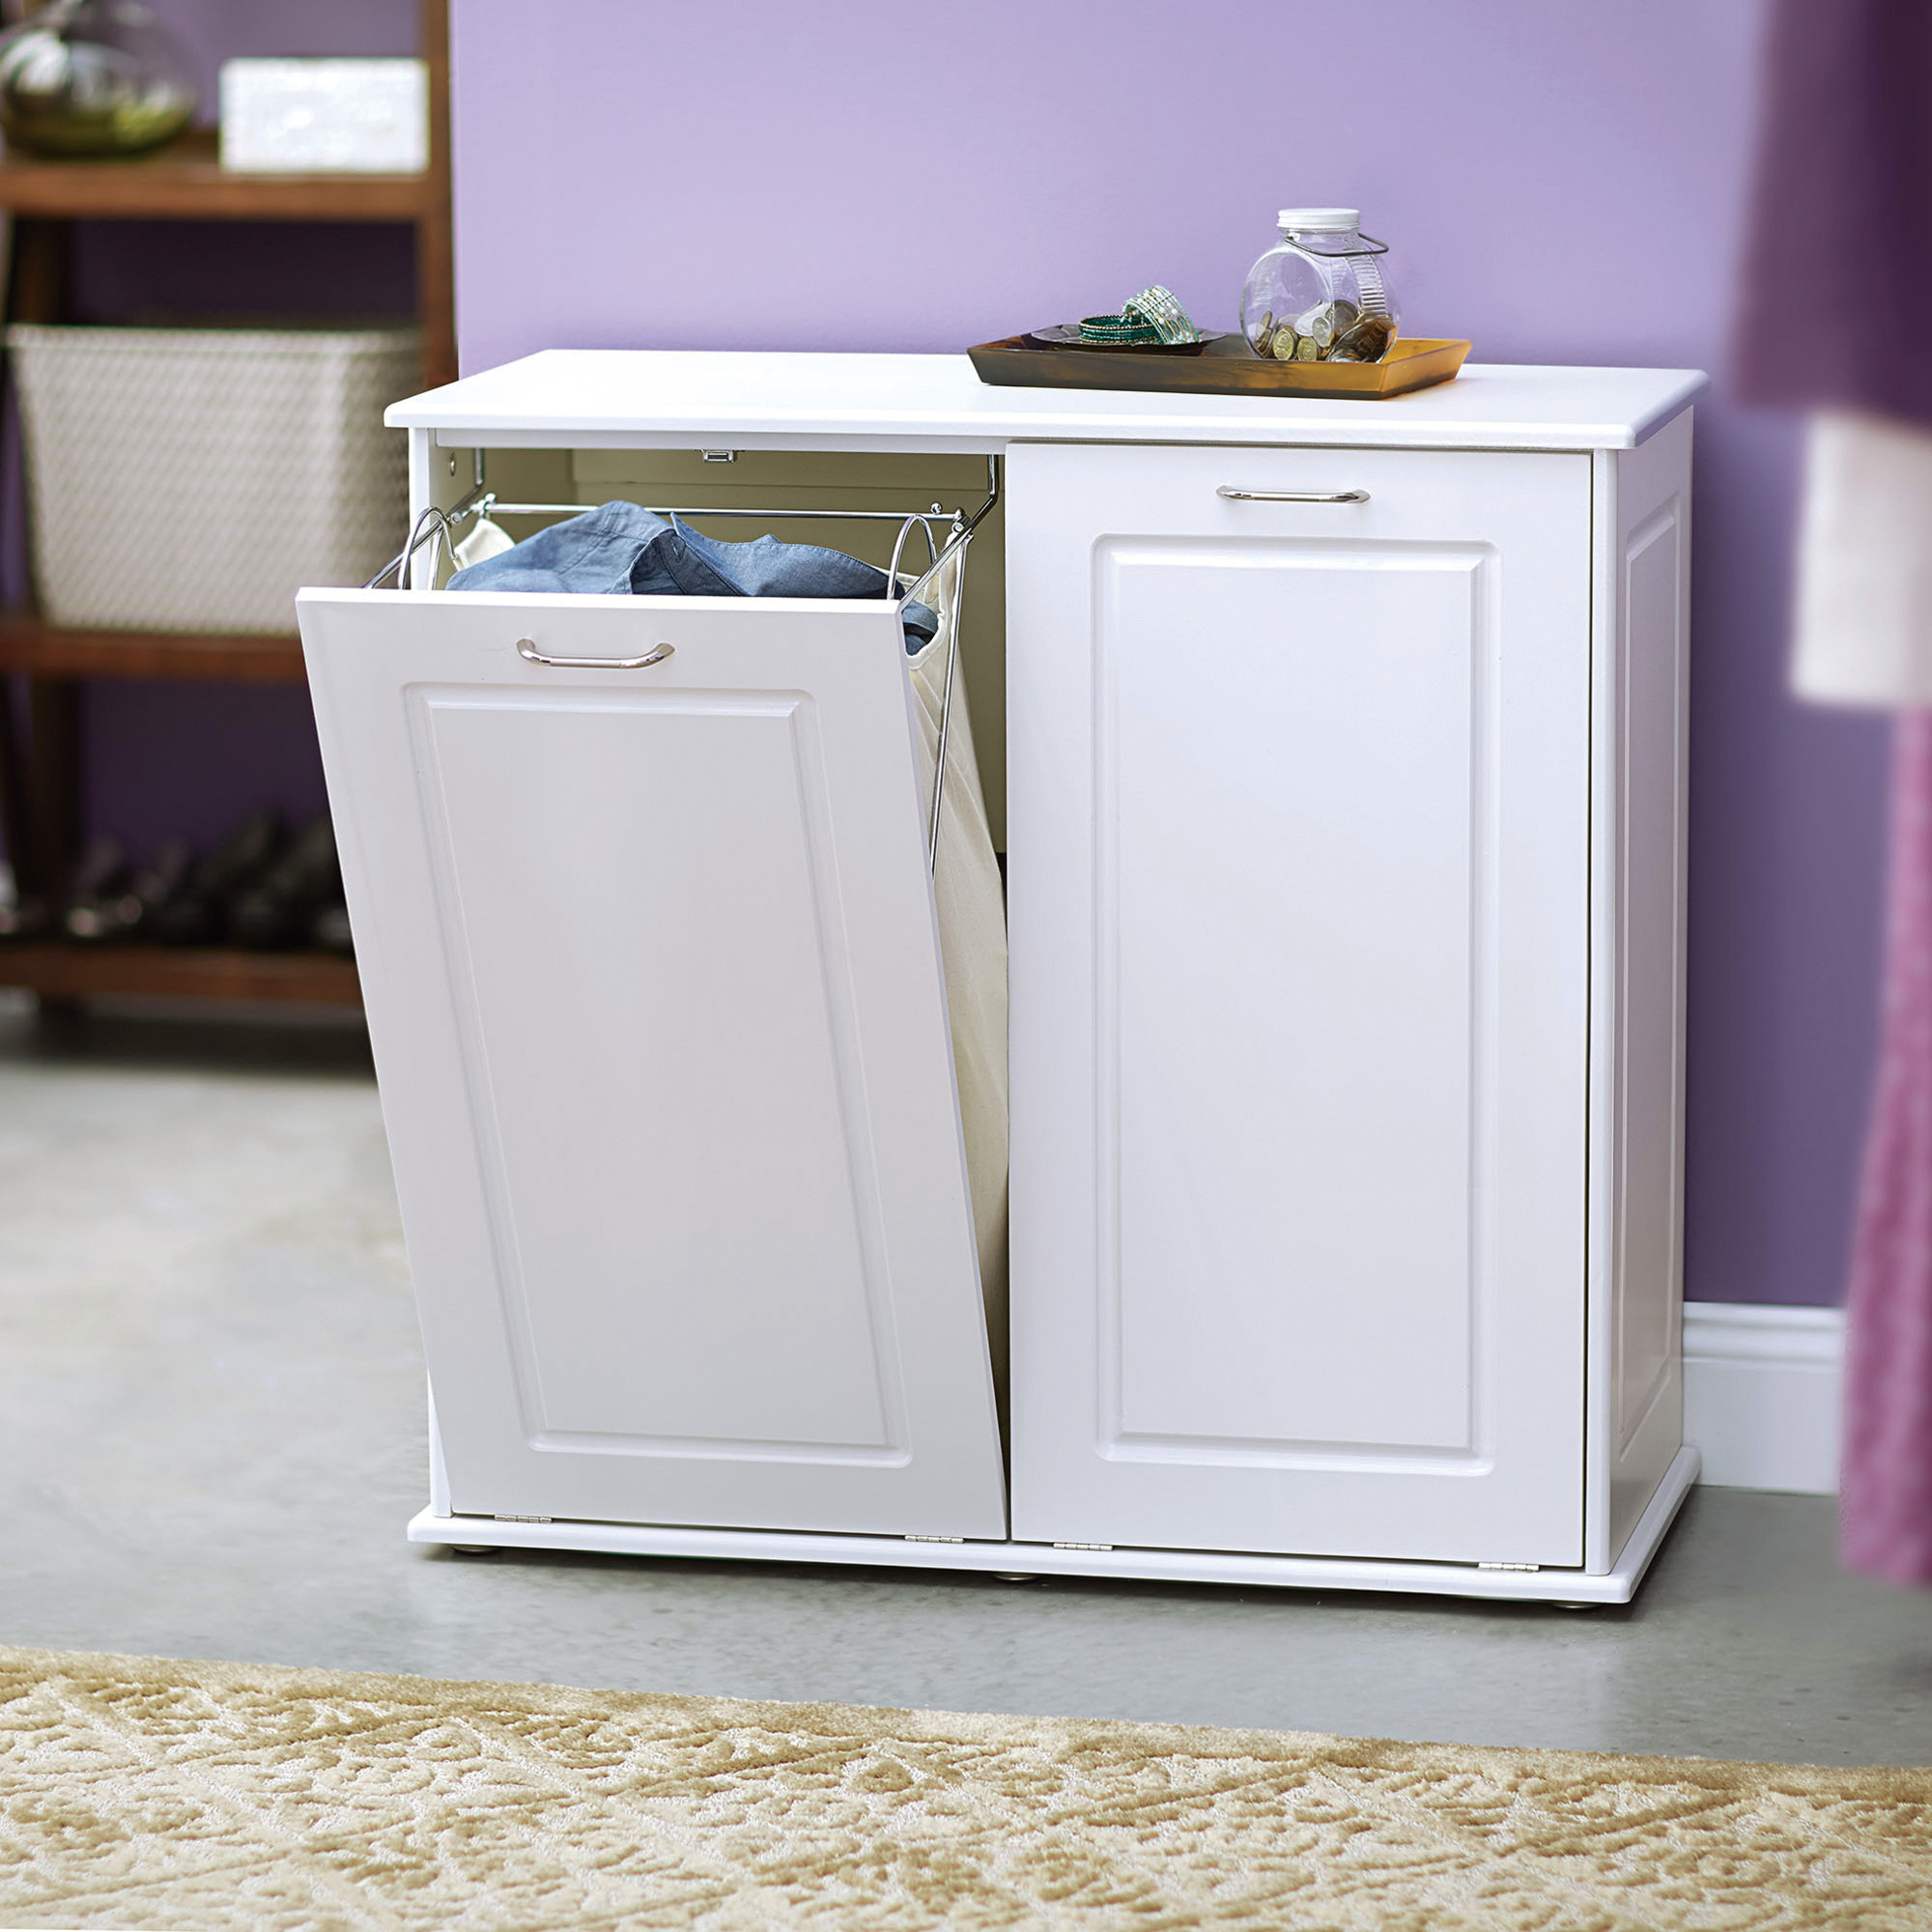 Best ideas about Laundry Sorter Cabinet . Save or Pin Tilt Out Laundry Sorter Cabinet — 33 3in L x 15 38in W x Now.